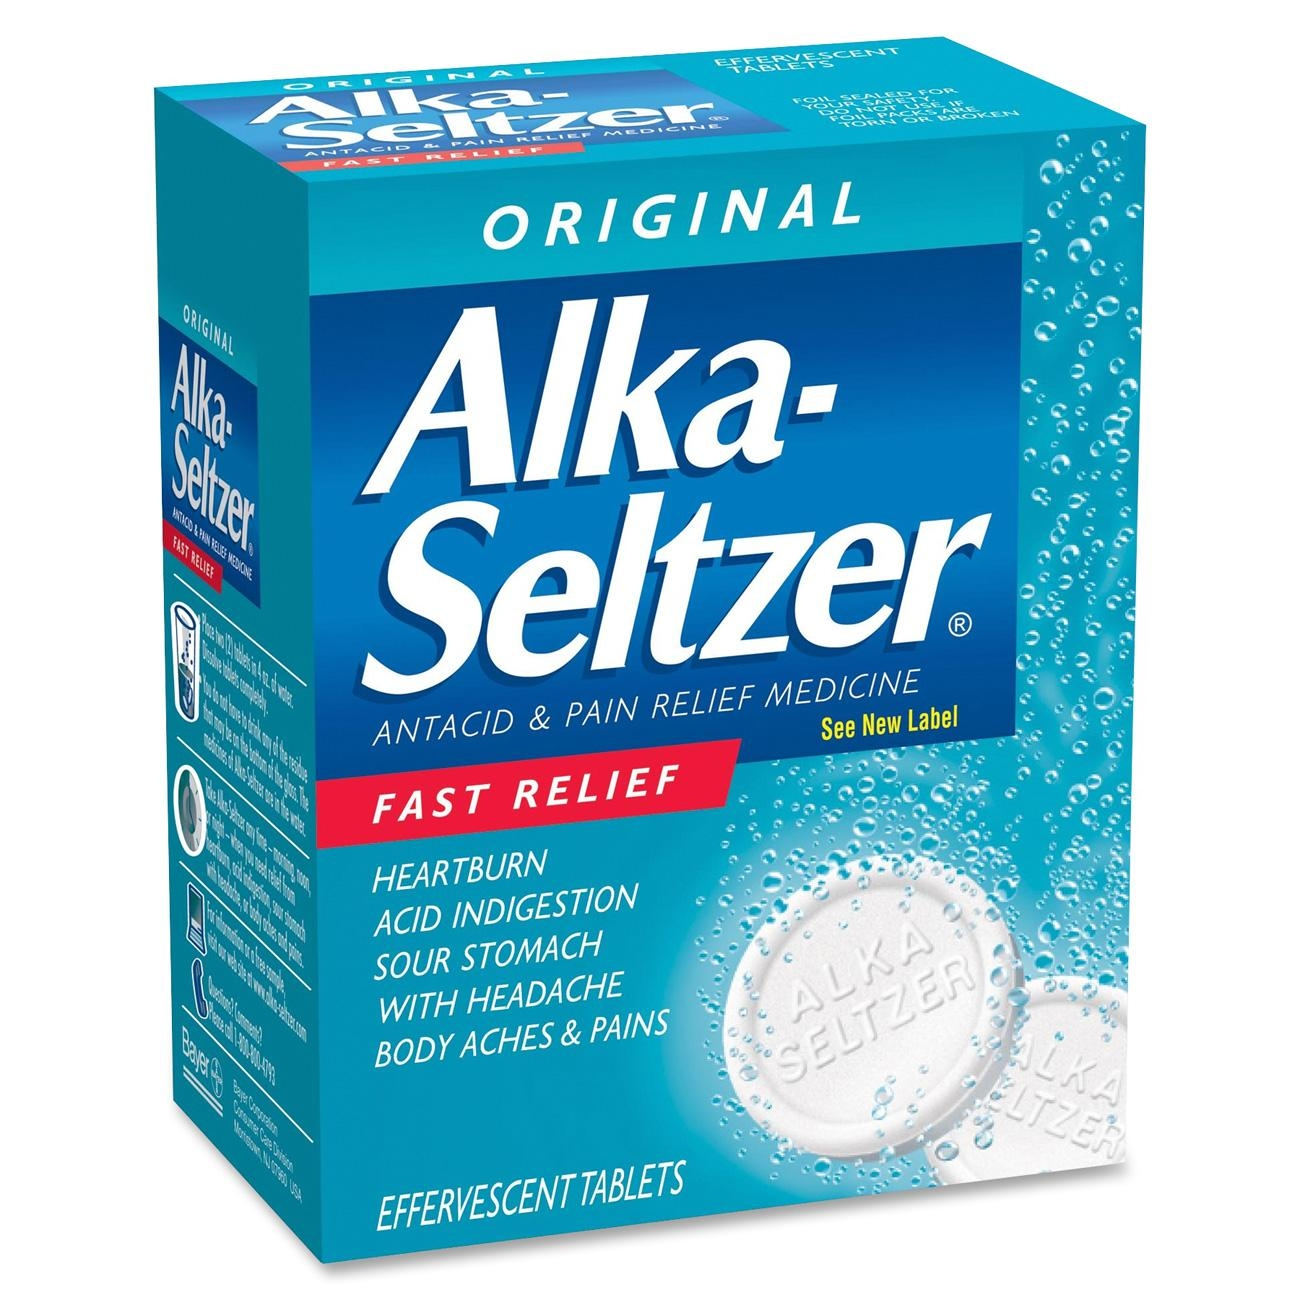 You-Only-Need-One-Alka-Seltzer.jpg